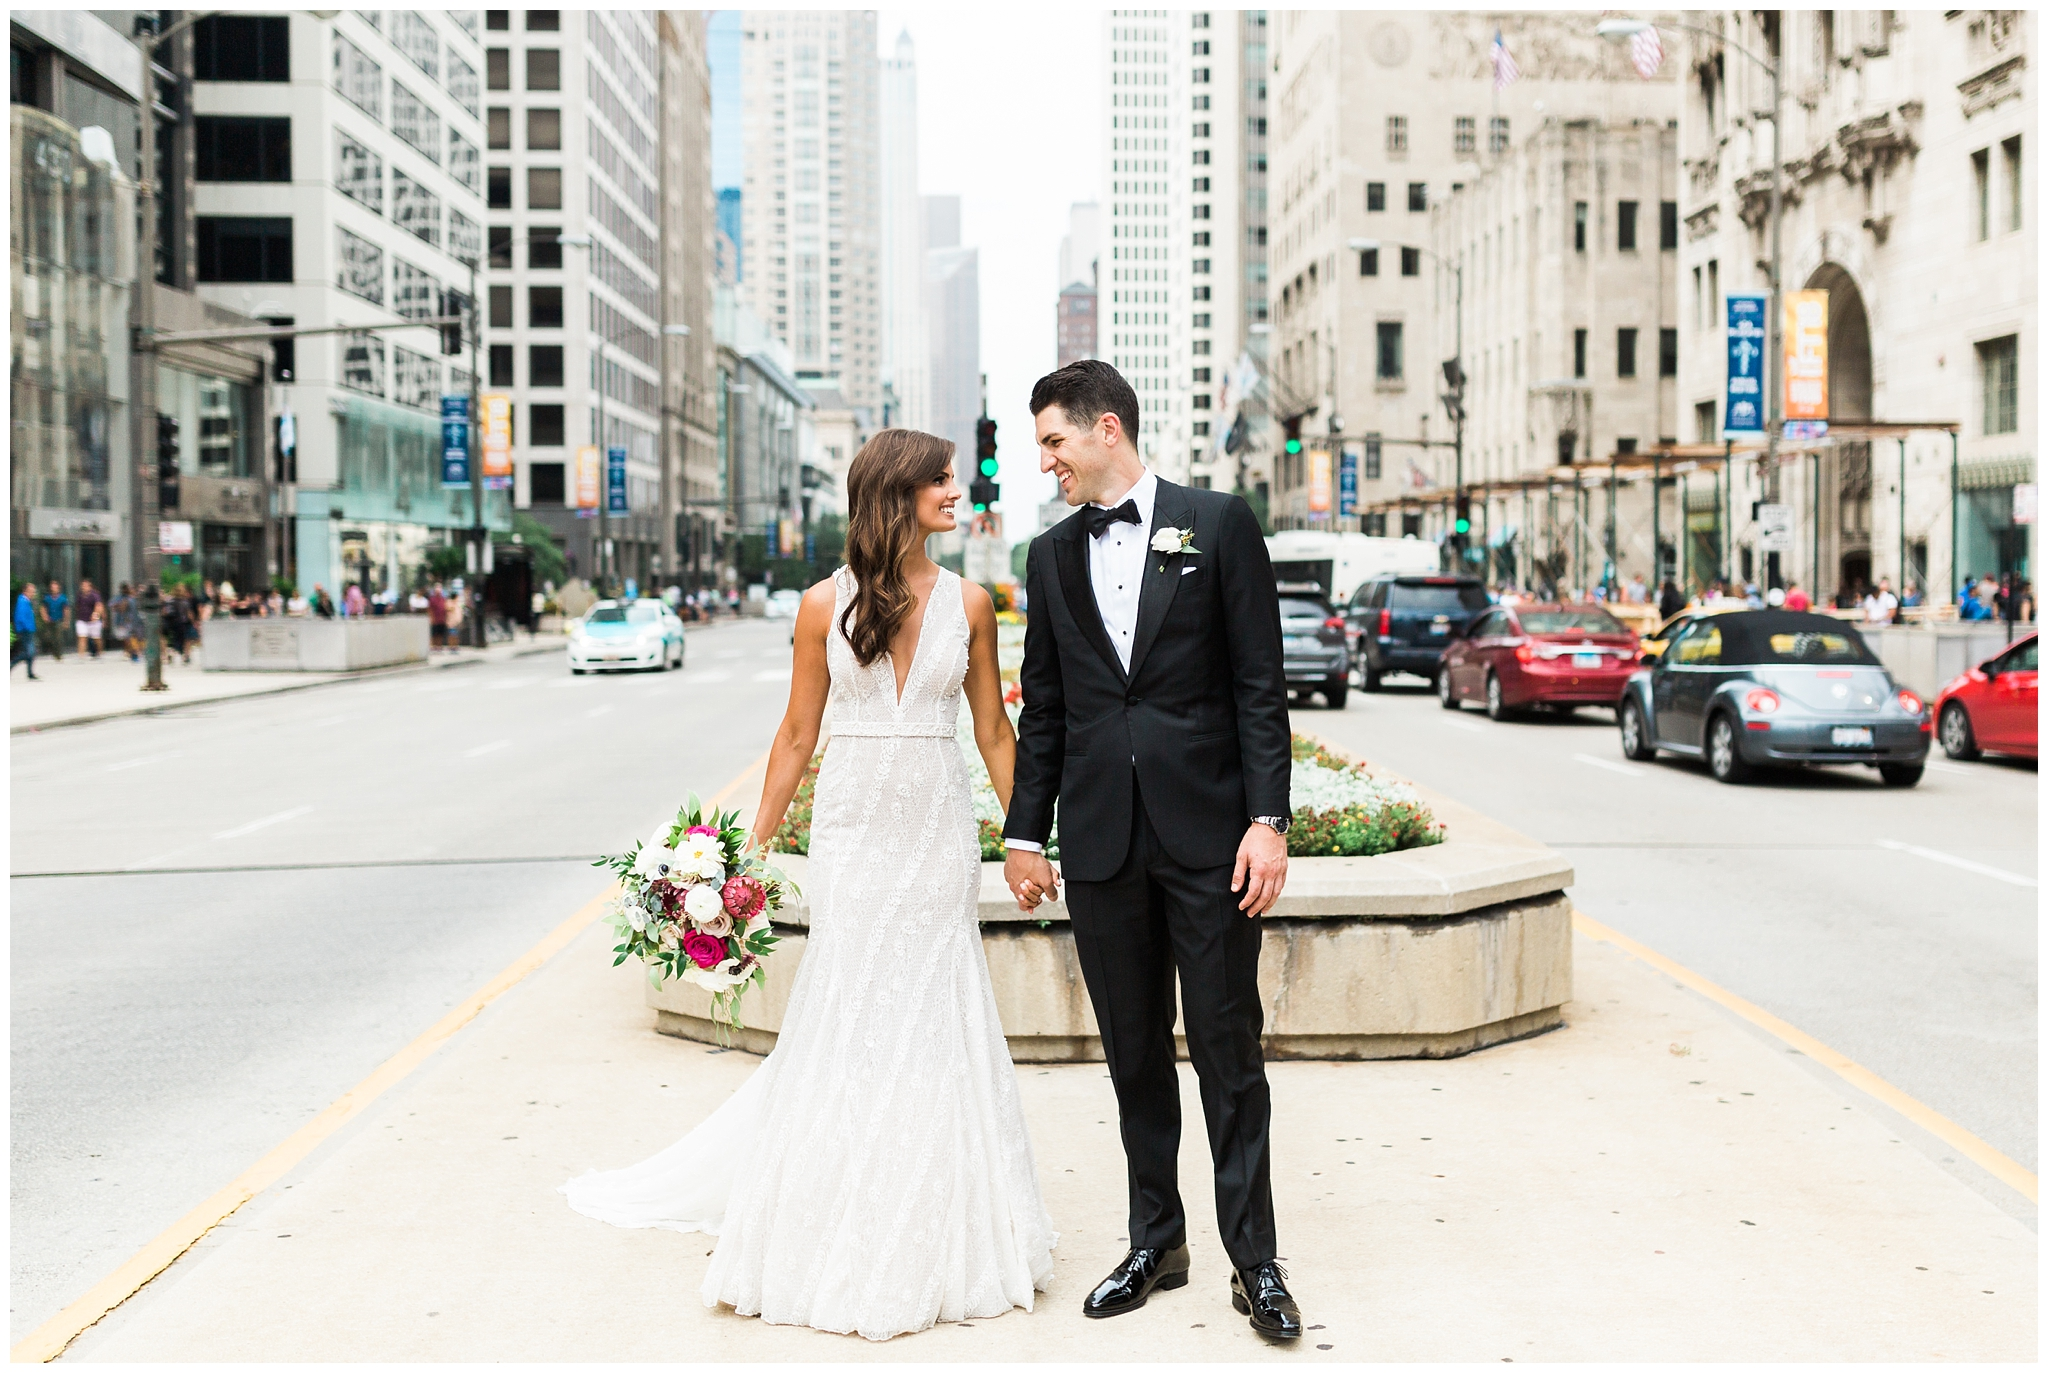 chicagoweddingphotographer_chicagowedding_ivyroomwedding_ivyroomchicago__0117.jpg